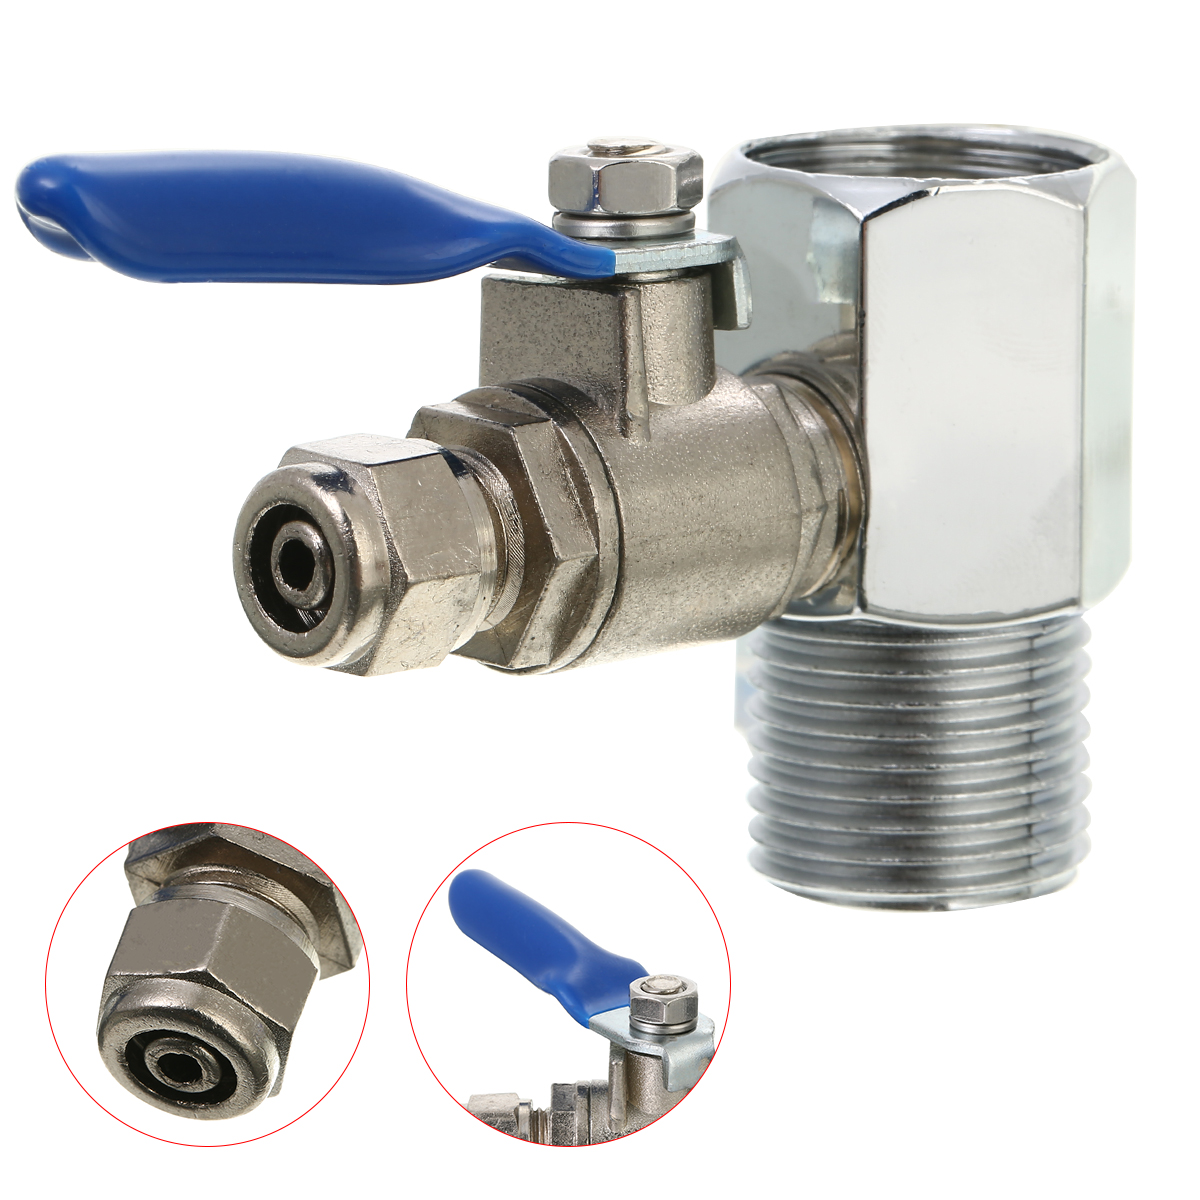 Sliver 3Way RO Feed Water Adapter 1/2'' To 1/4'' Ball Valve Water Adapter Stainless Steel 1/4